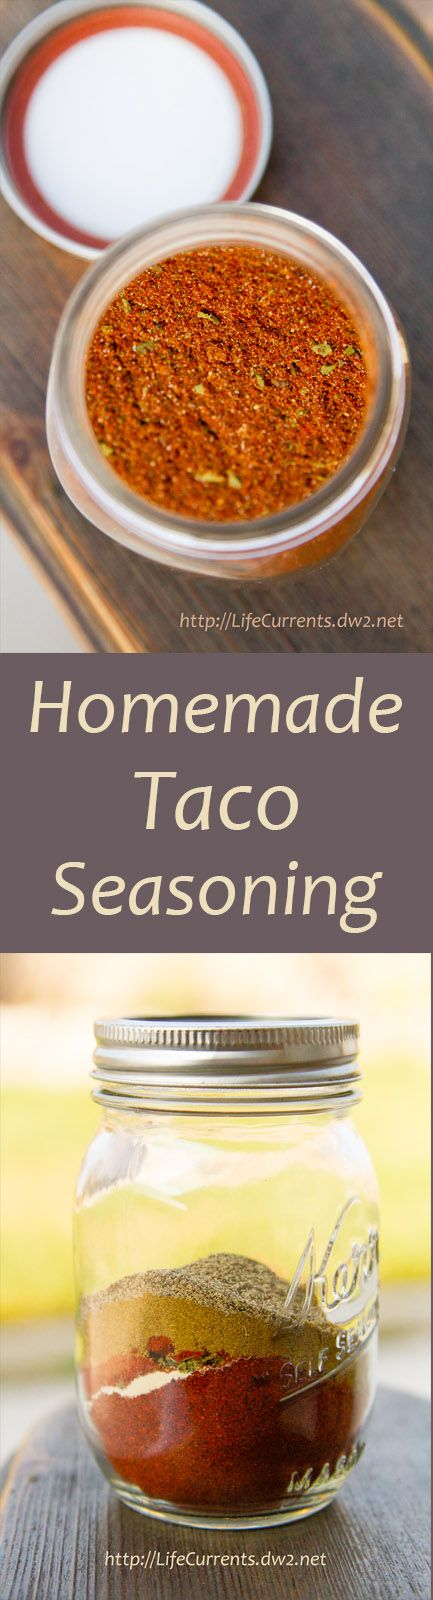 Homemade Taco Seasoning is amazing! It smells so deep & rich. So full of flavor. And, I left the salt out entirely. Make your own today!